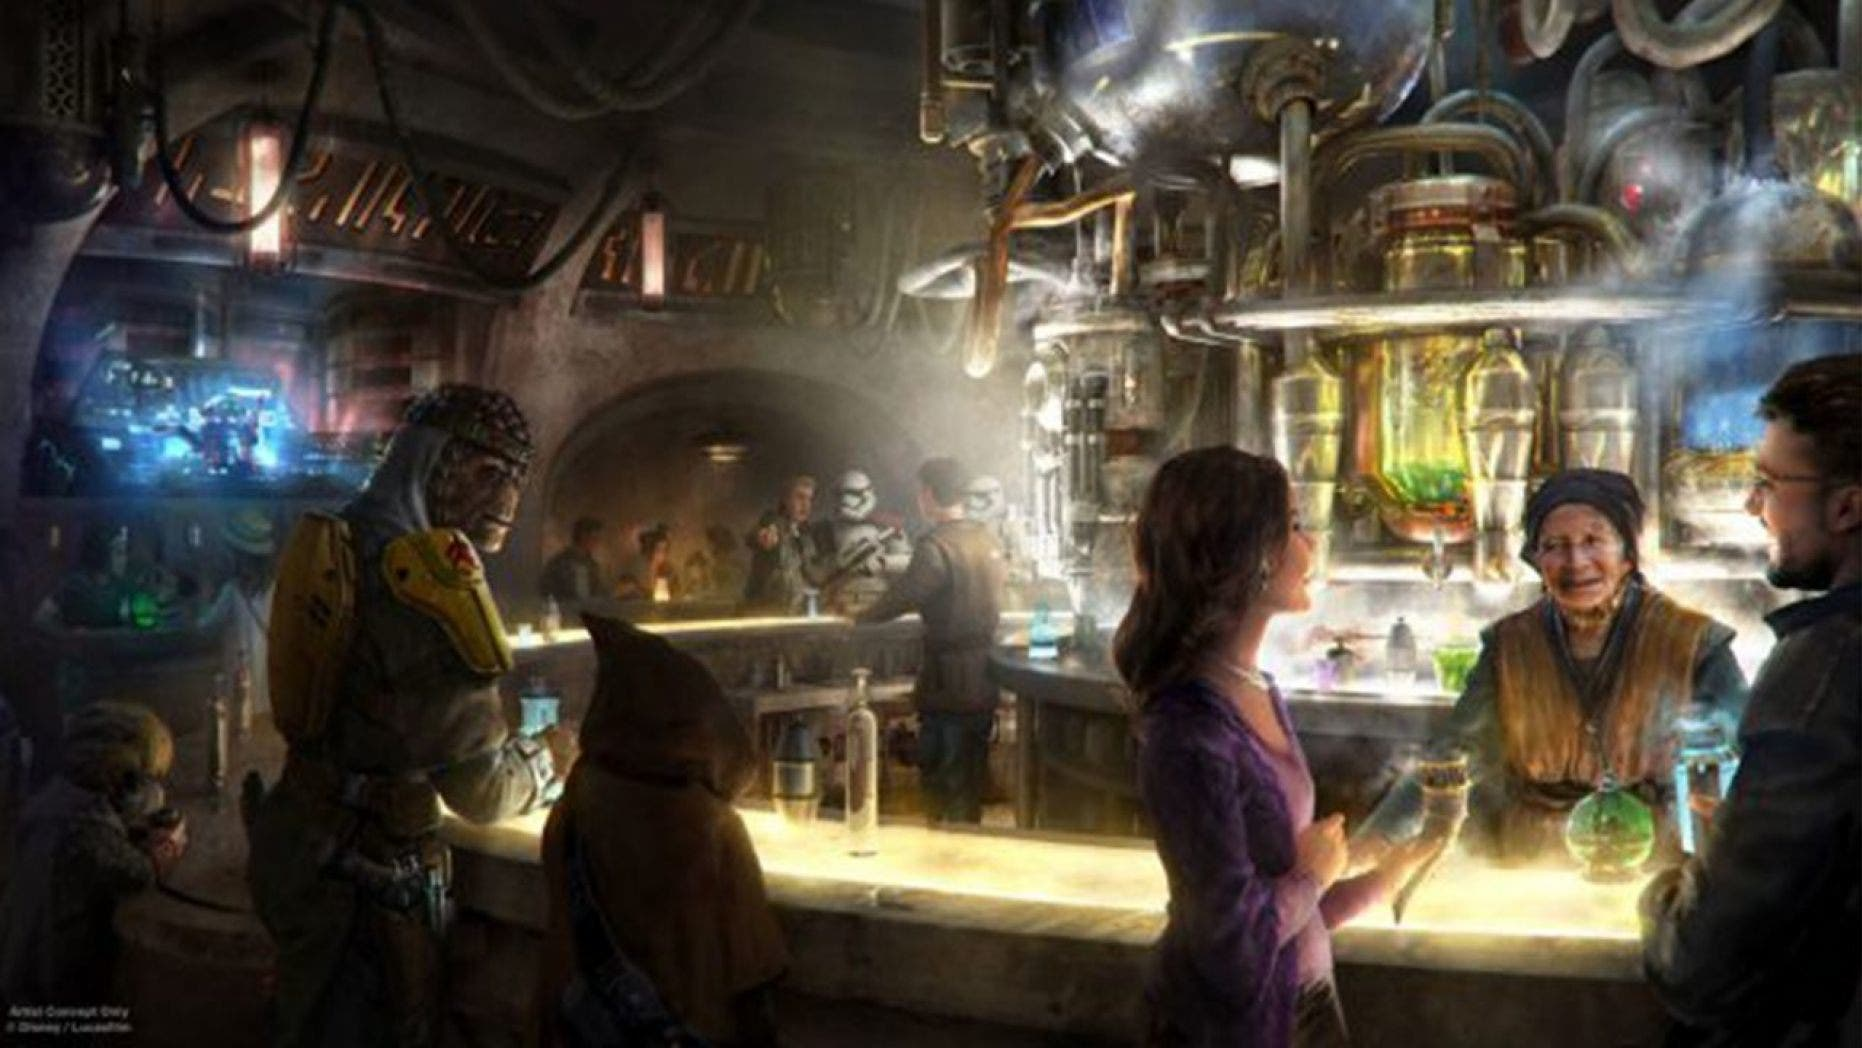 Reps for the theme park confirmed via Twitter that visitors over 21 years old will only be allowed to drink in the confines of the upcoming Oga's Cantina at the new Star Wars: Galaxy's Edge attraction.